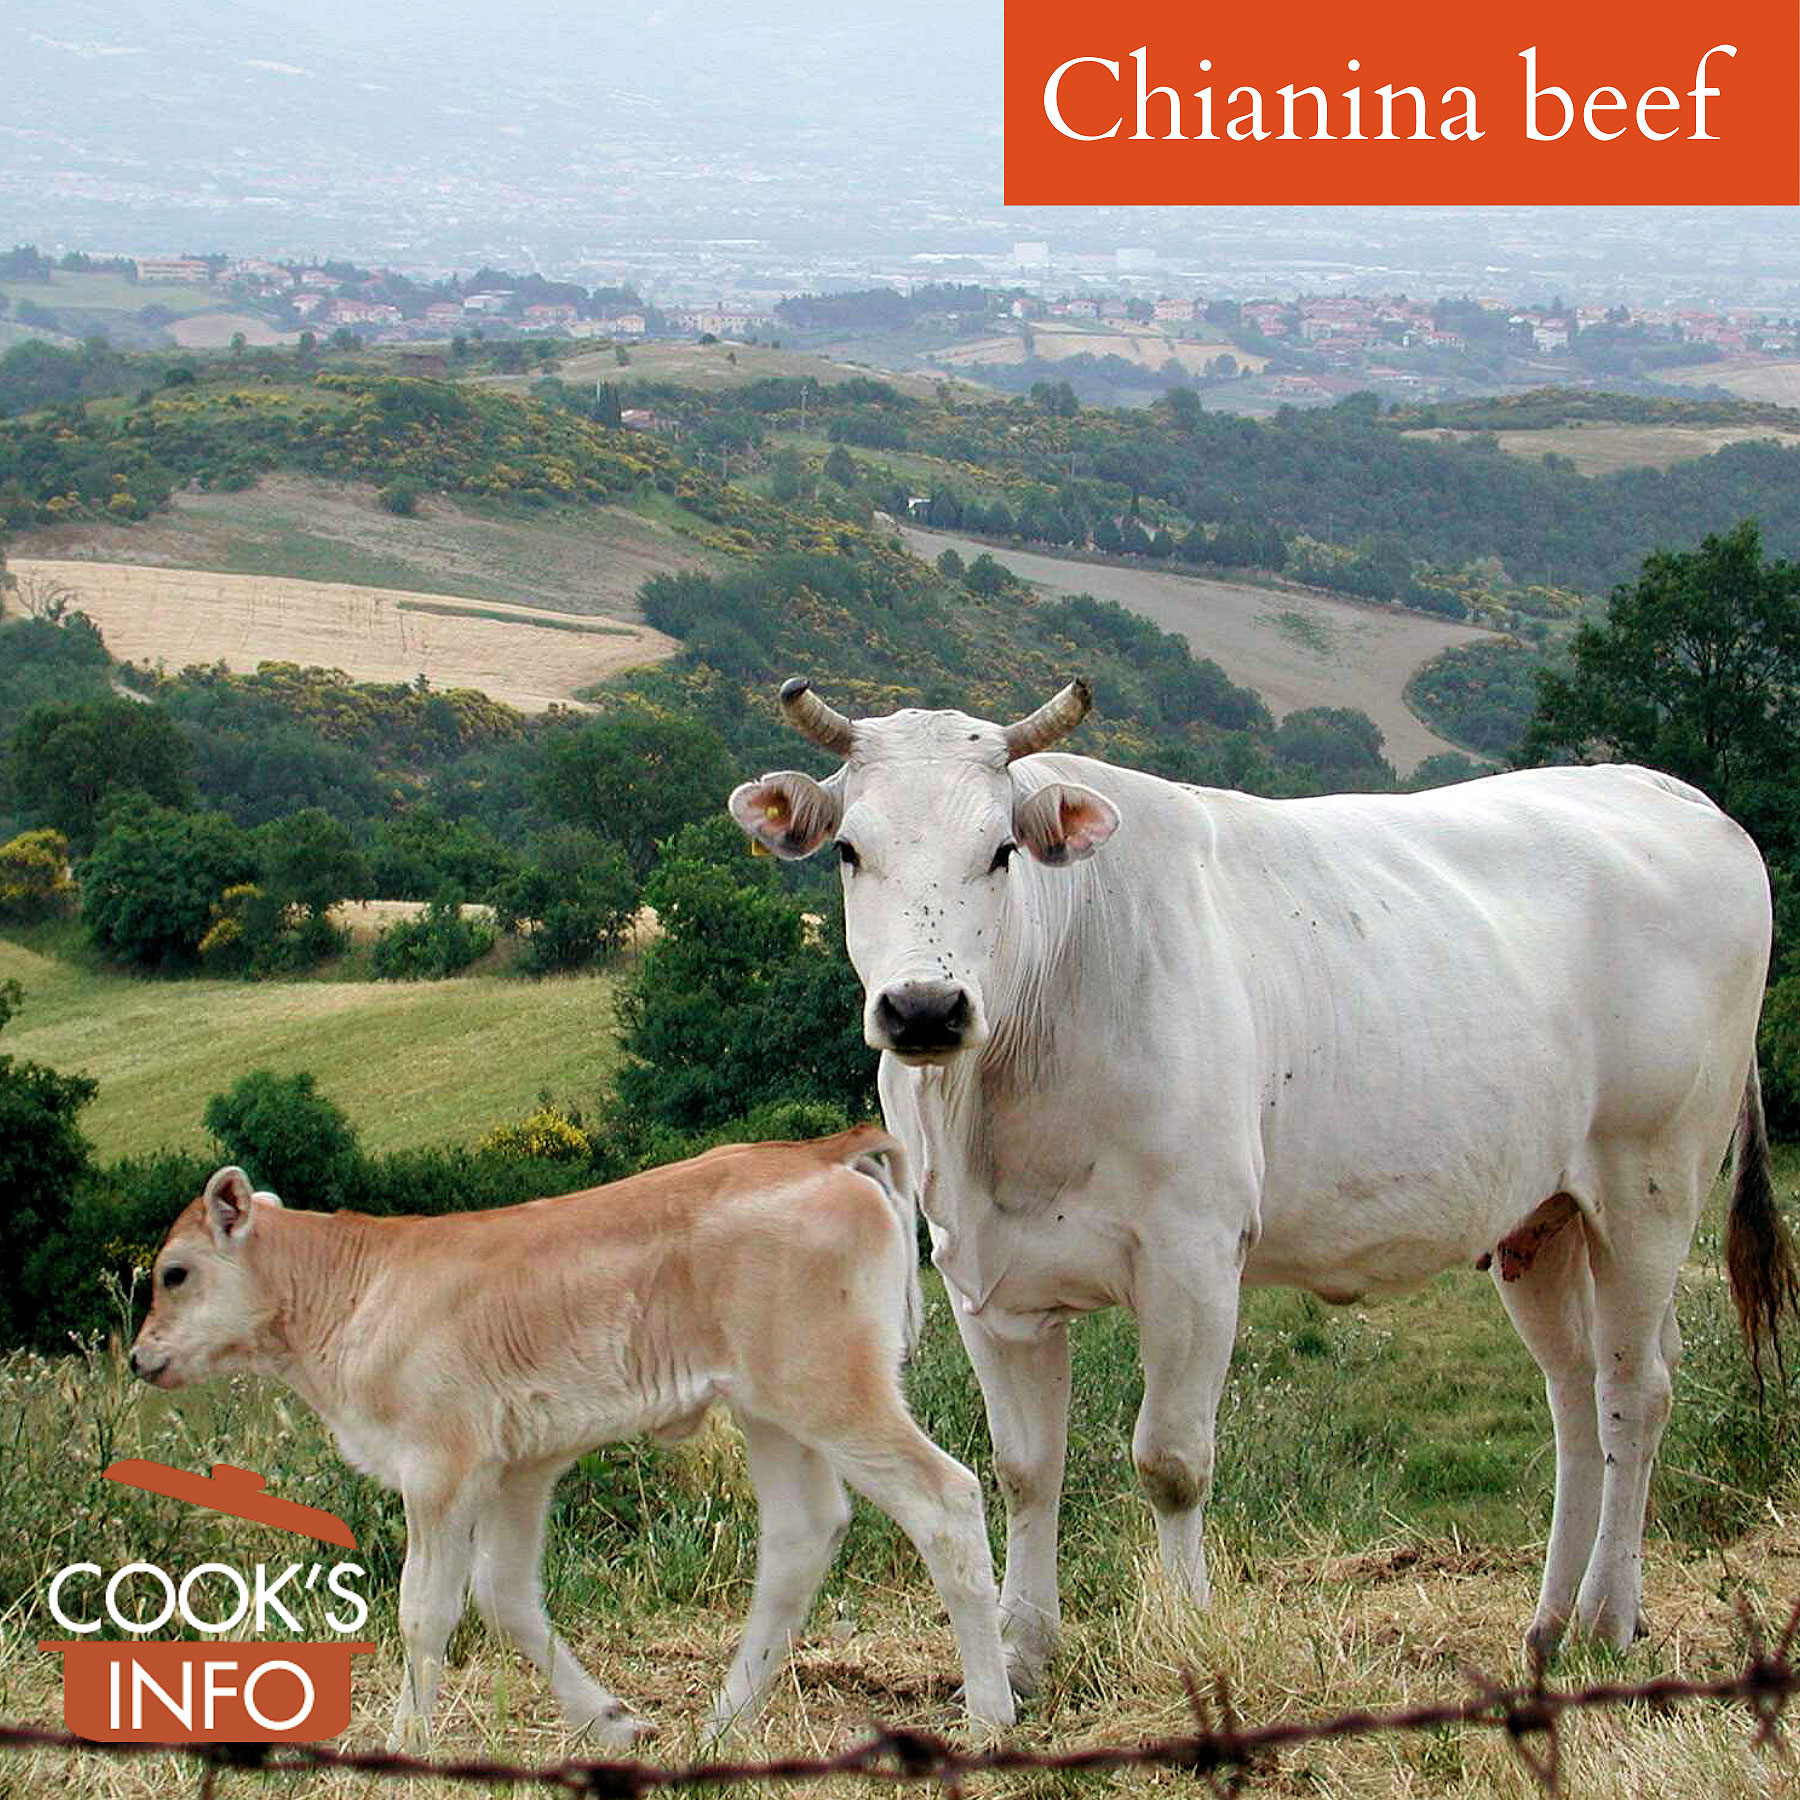 Chianina cow and her calf, Tuscany